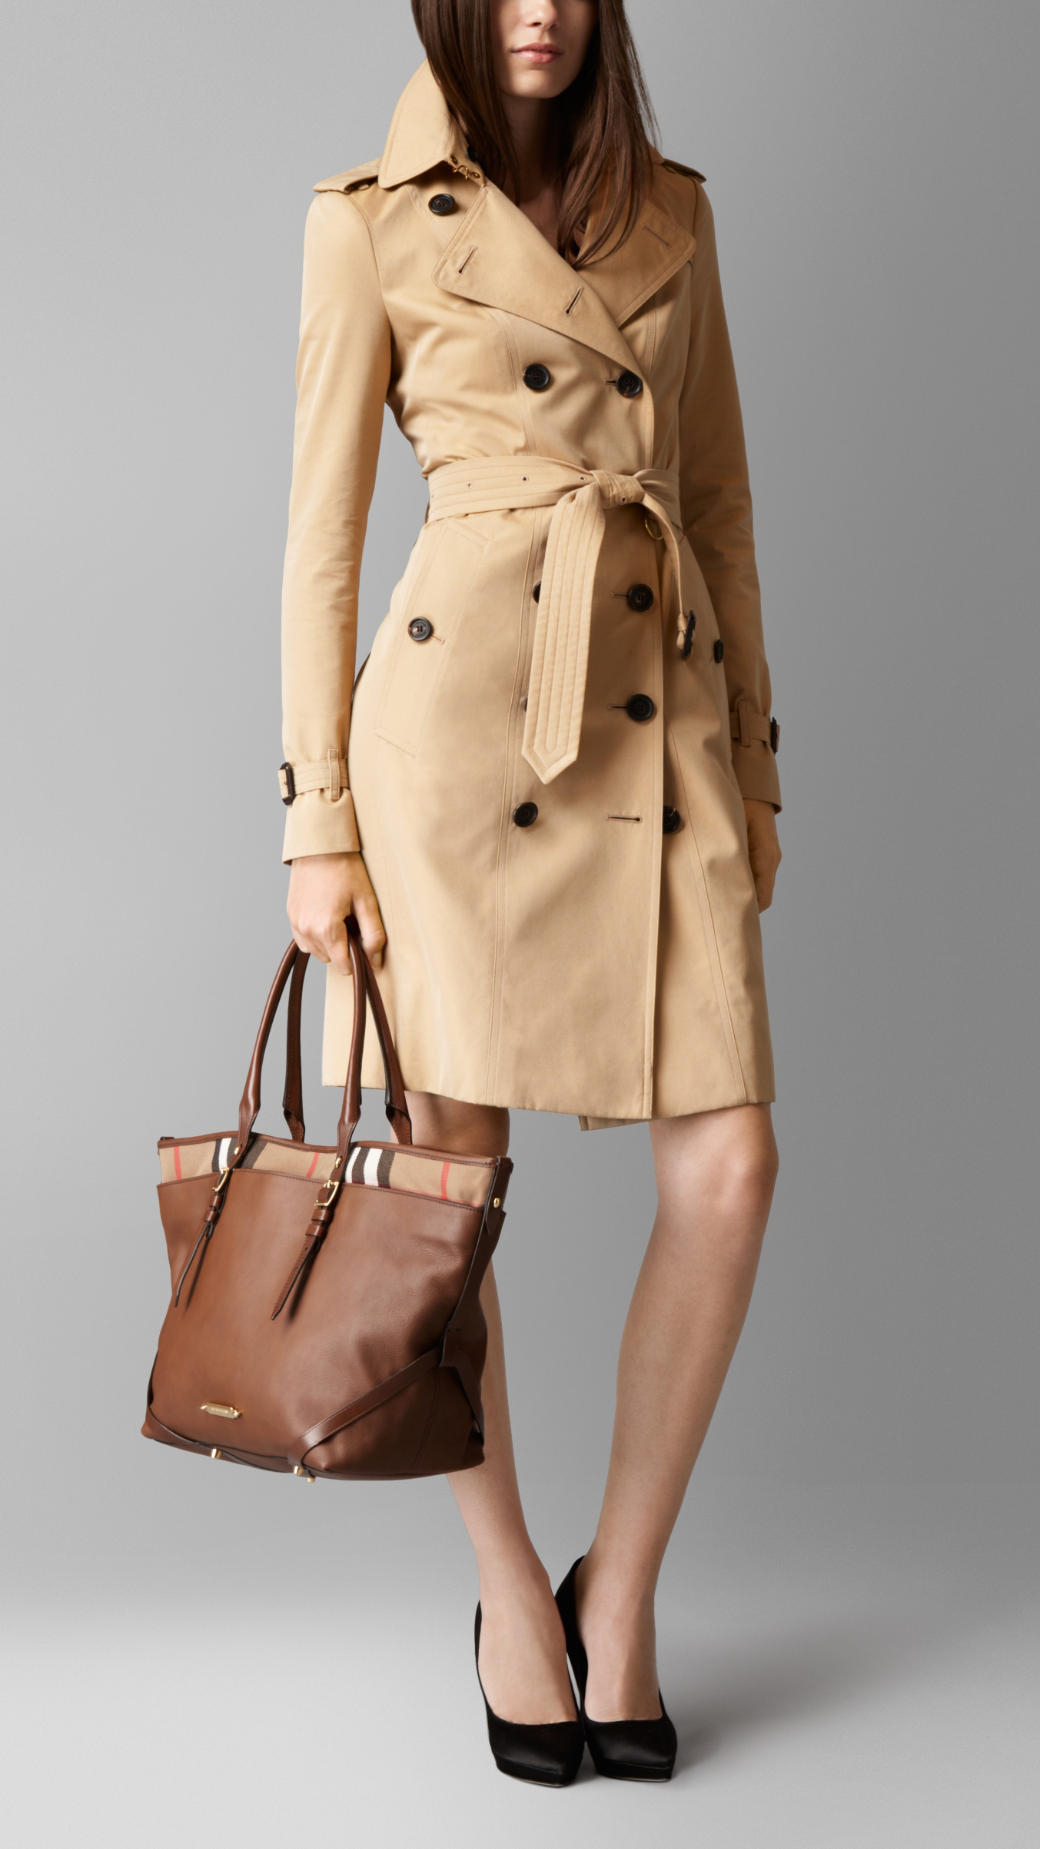 Lyst - Burberry Medium Leather And House Check Tote Bag in Brown 6ee5b0b8f66e9